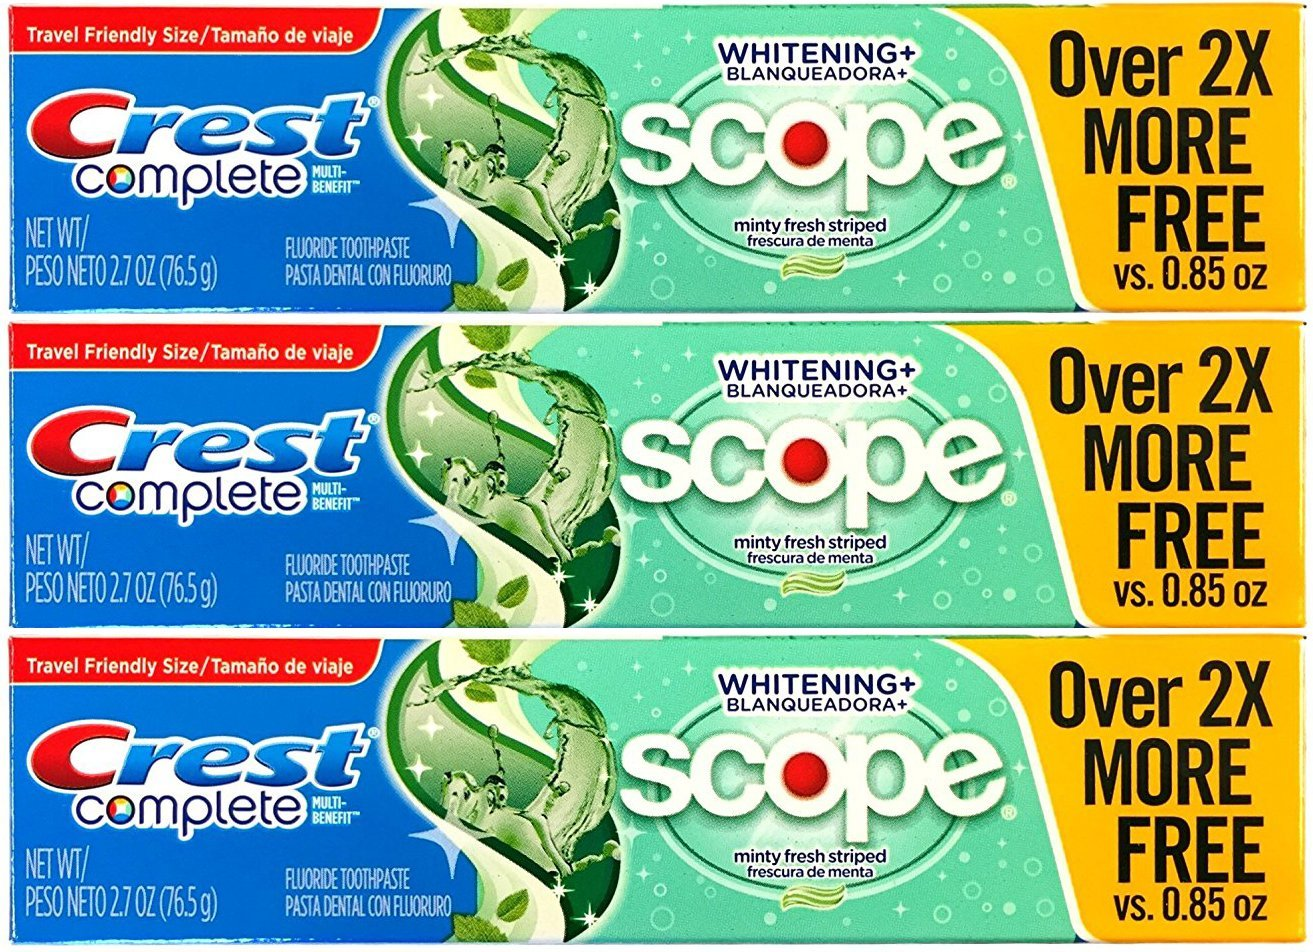 Crest Complete Multi-Benefit Whitening + Scope Minty Fresh Flavor Toothpaste 2.7 Oz, Pack of 3